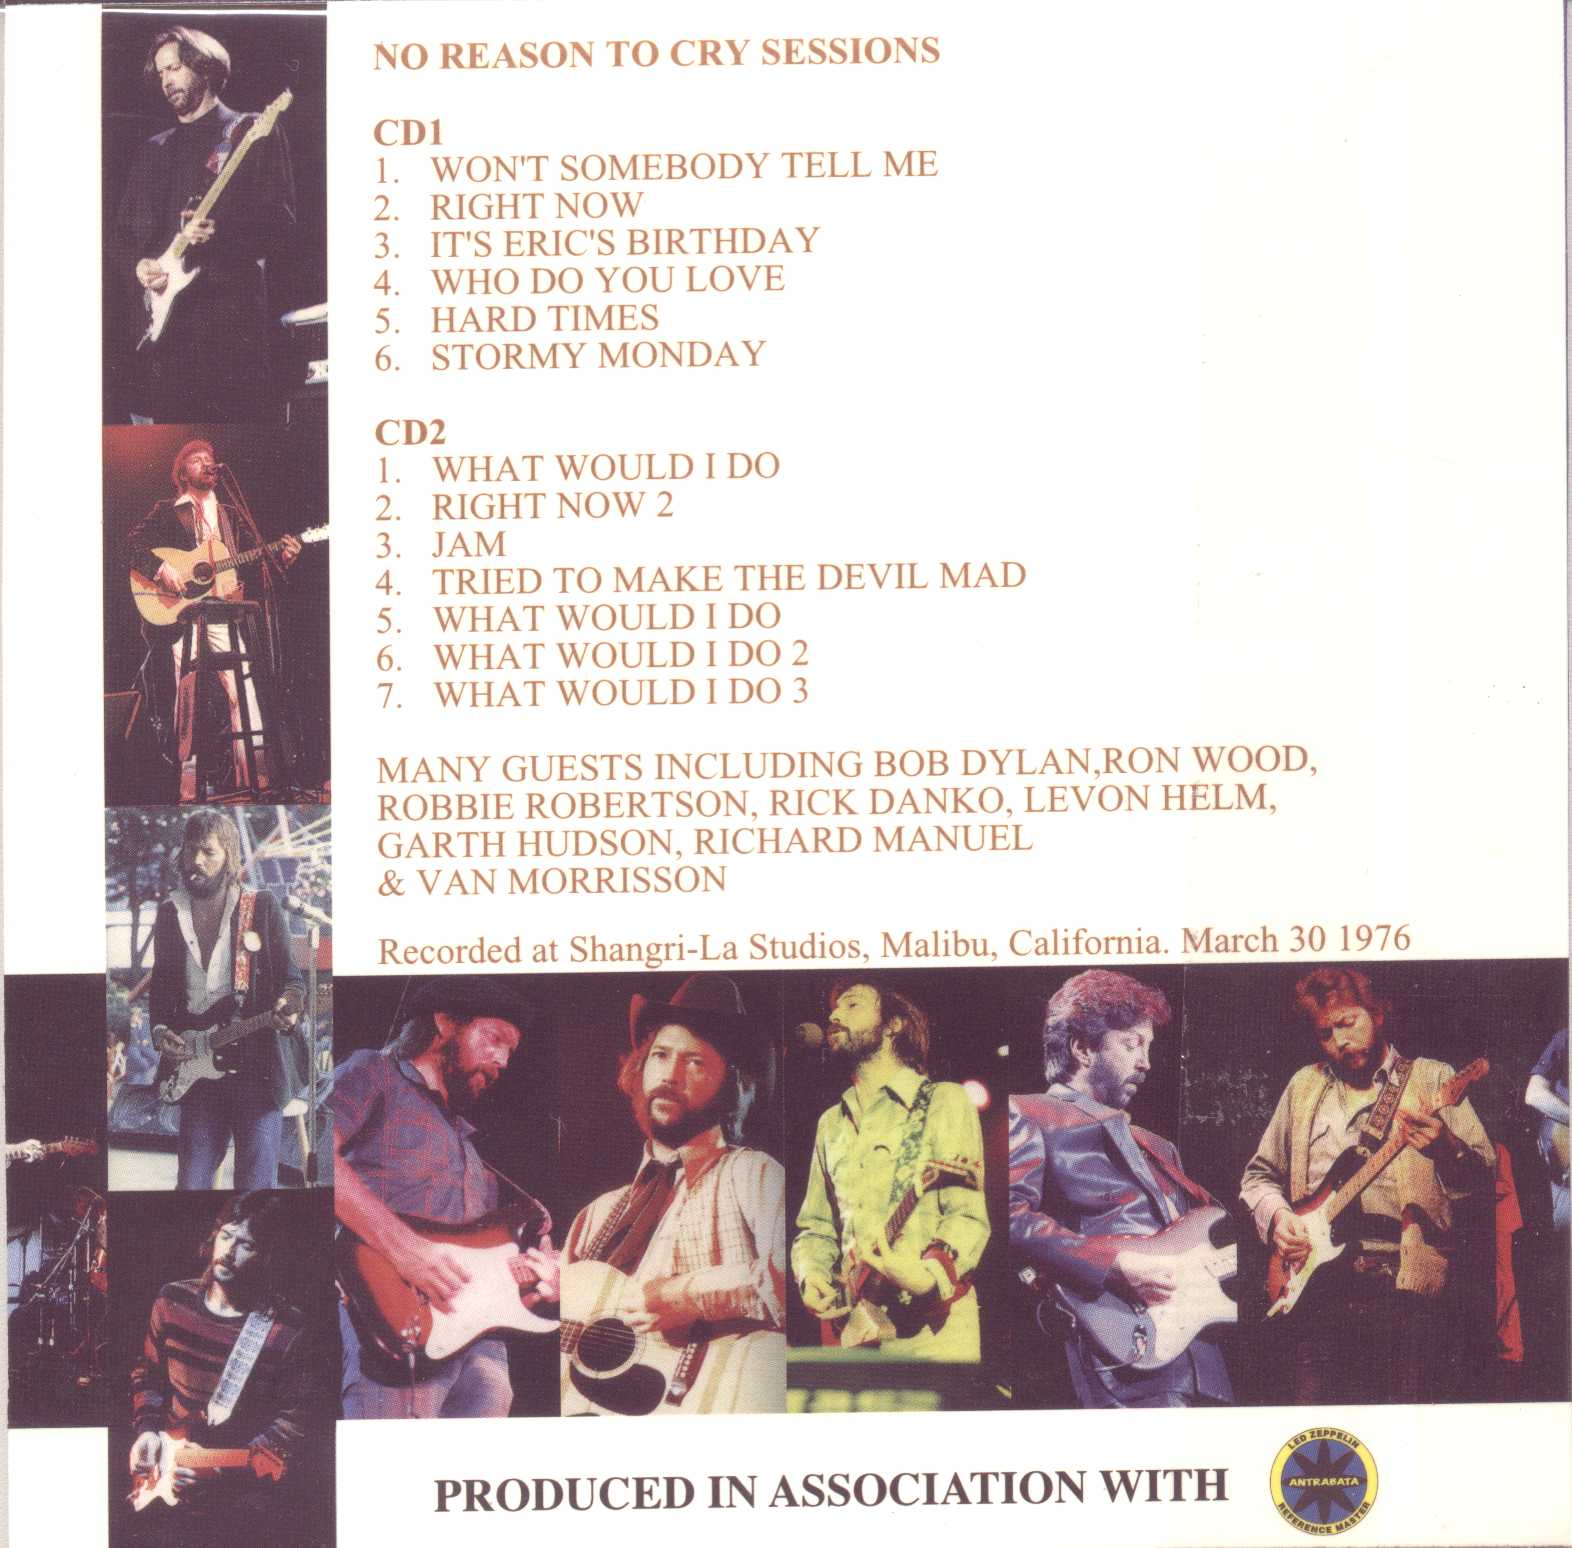 Slowhand Masterfile 4 - No Reason to Cry Sessions